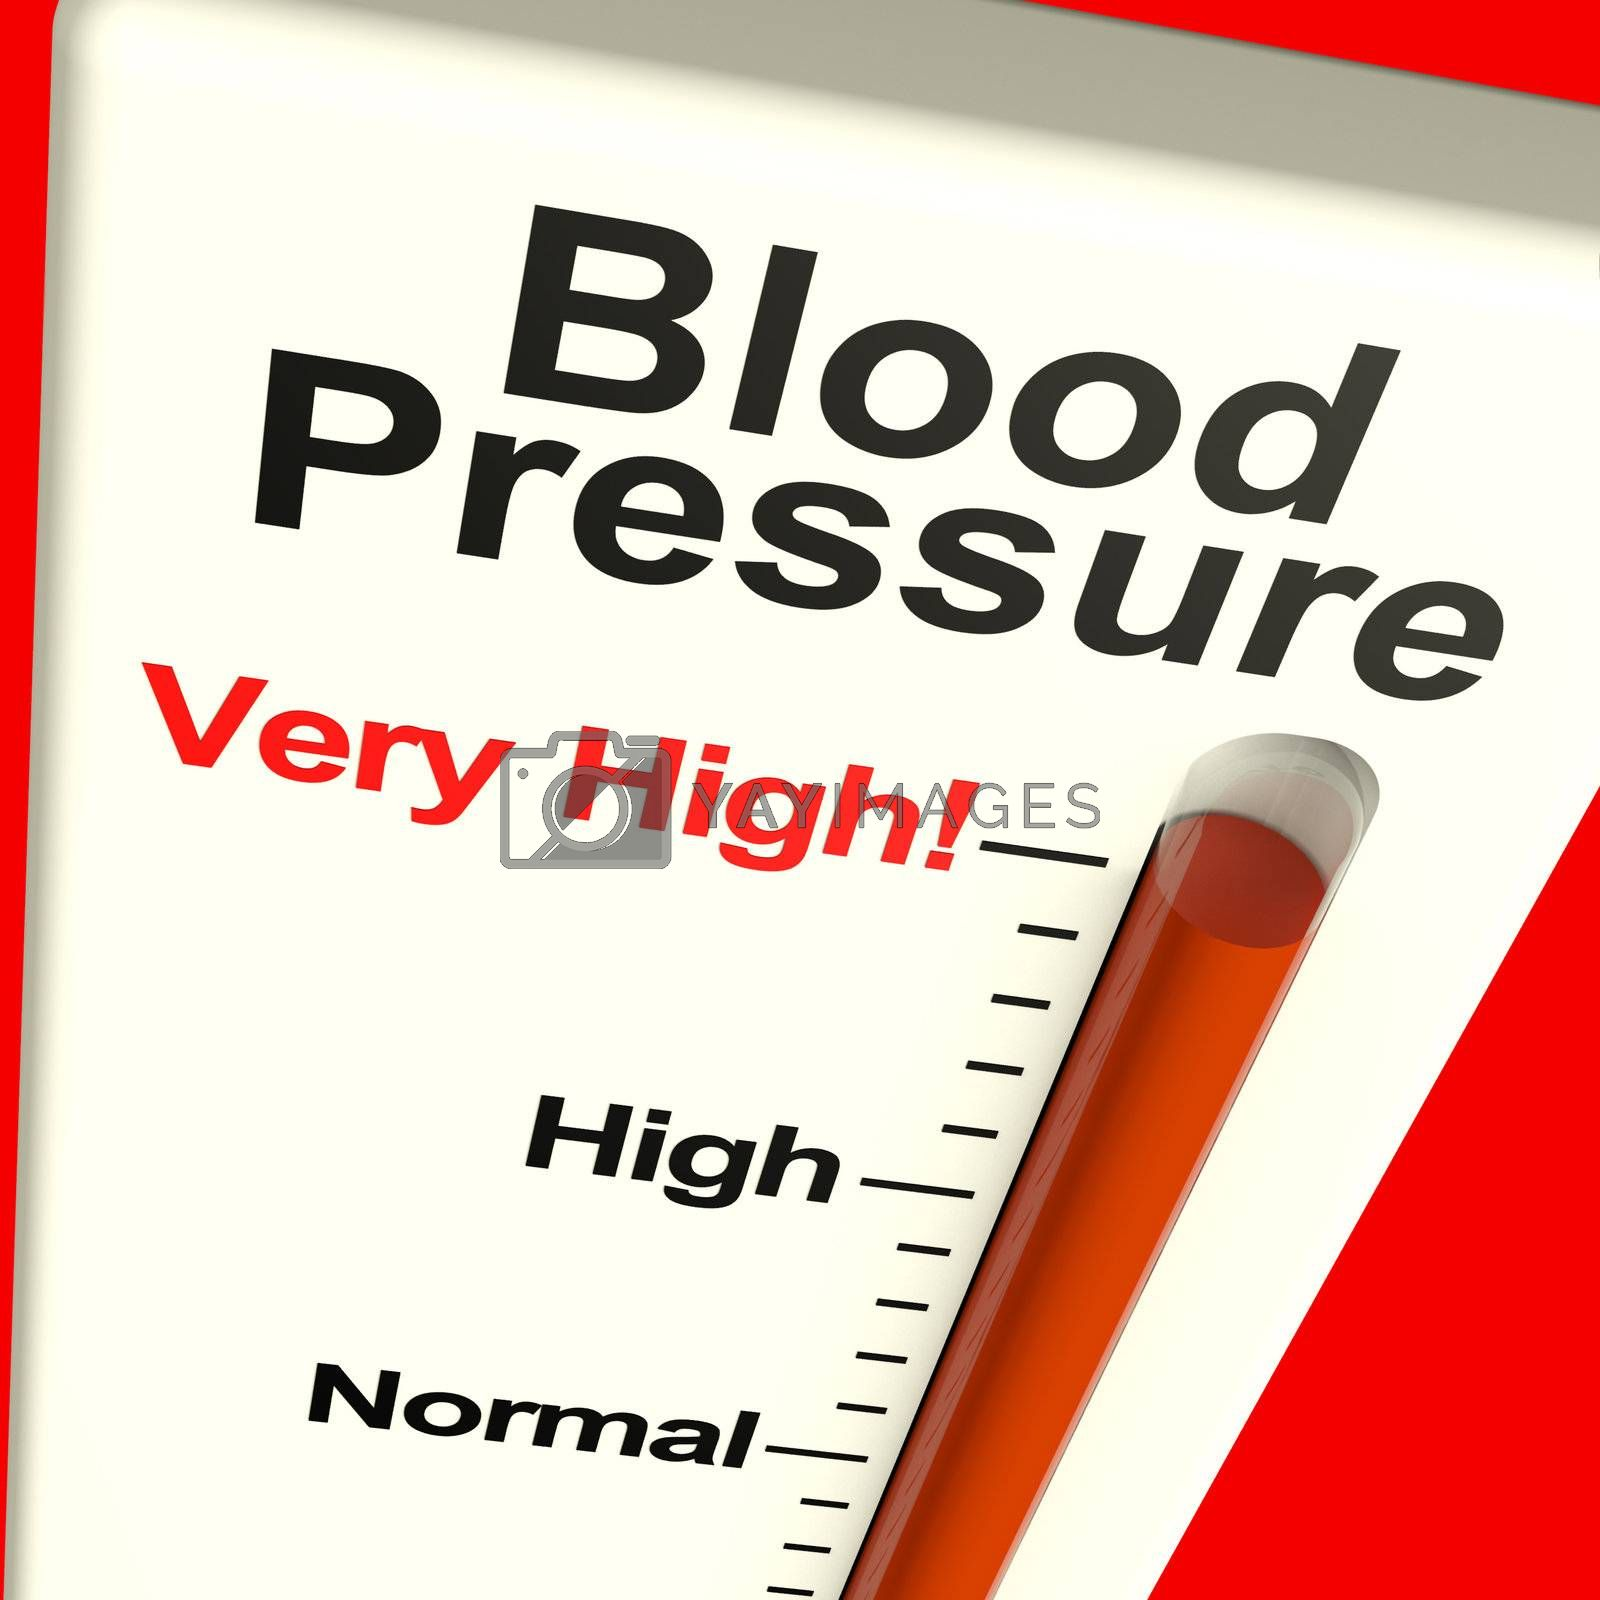 High Blood Pressure Showing Hypertension And Lots Of Stress